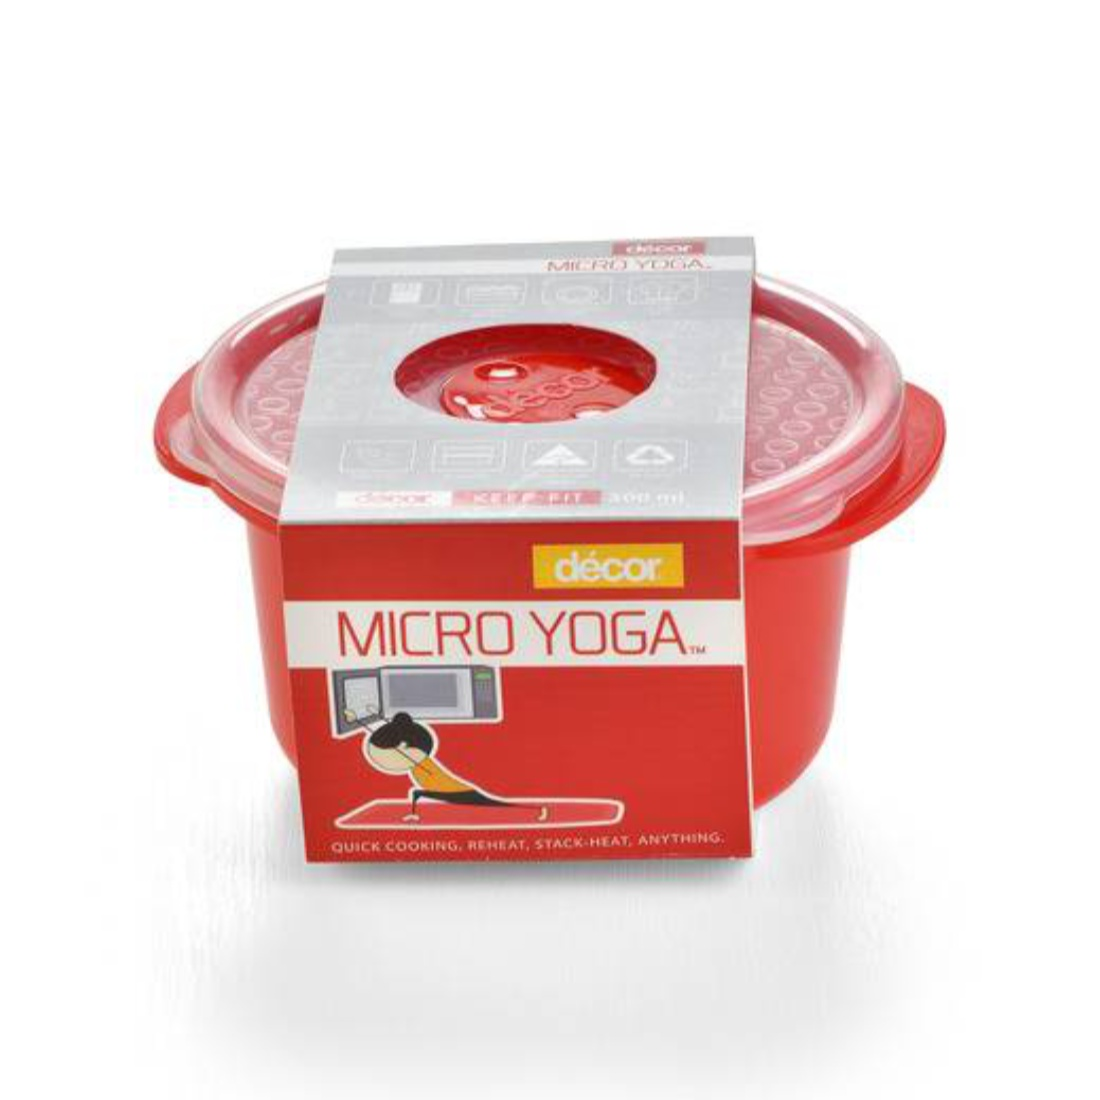 Micro Yoga Round 500ML Plastic Containers by Decor